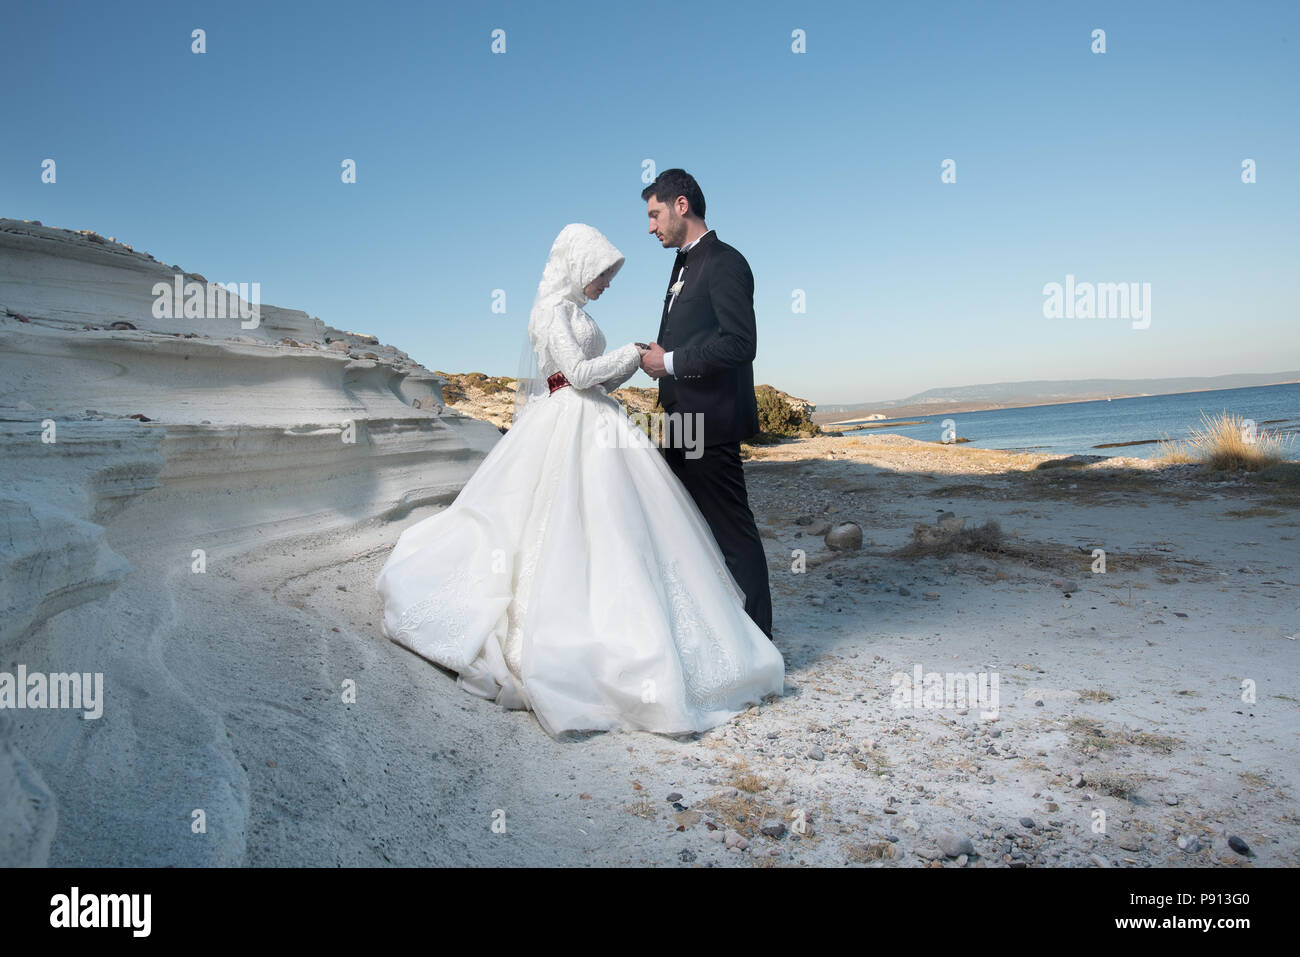 7358eafccb Muslim bride and groom Islamic wedding ceremony Middle Easterner  traditional Muslim wedding - Stock Image